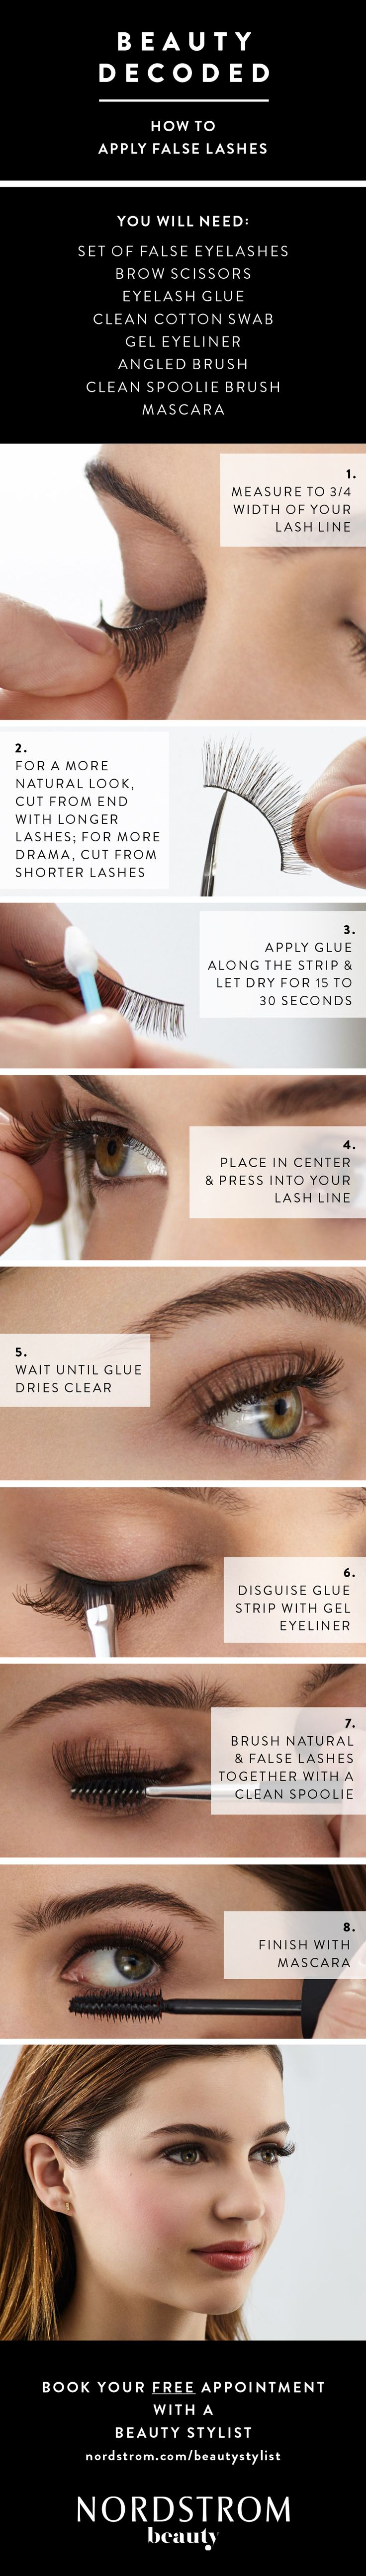 How to apply false lashes in 7 easy steps. Tips from the beauty pros at…